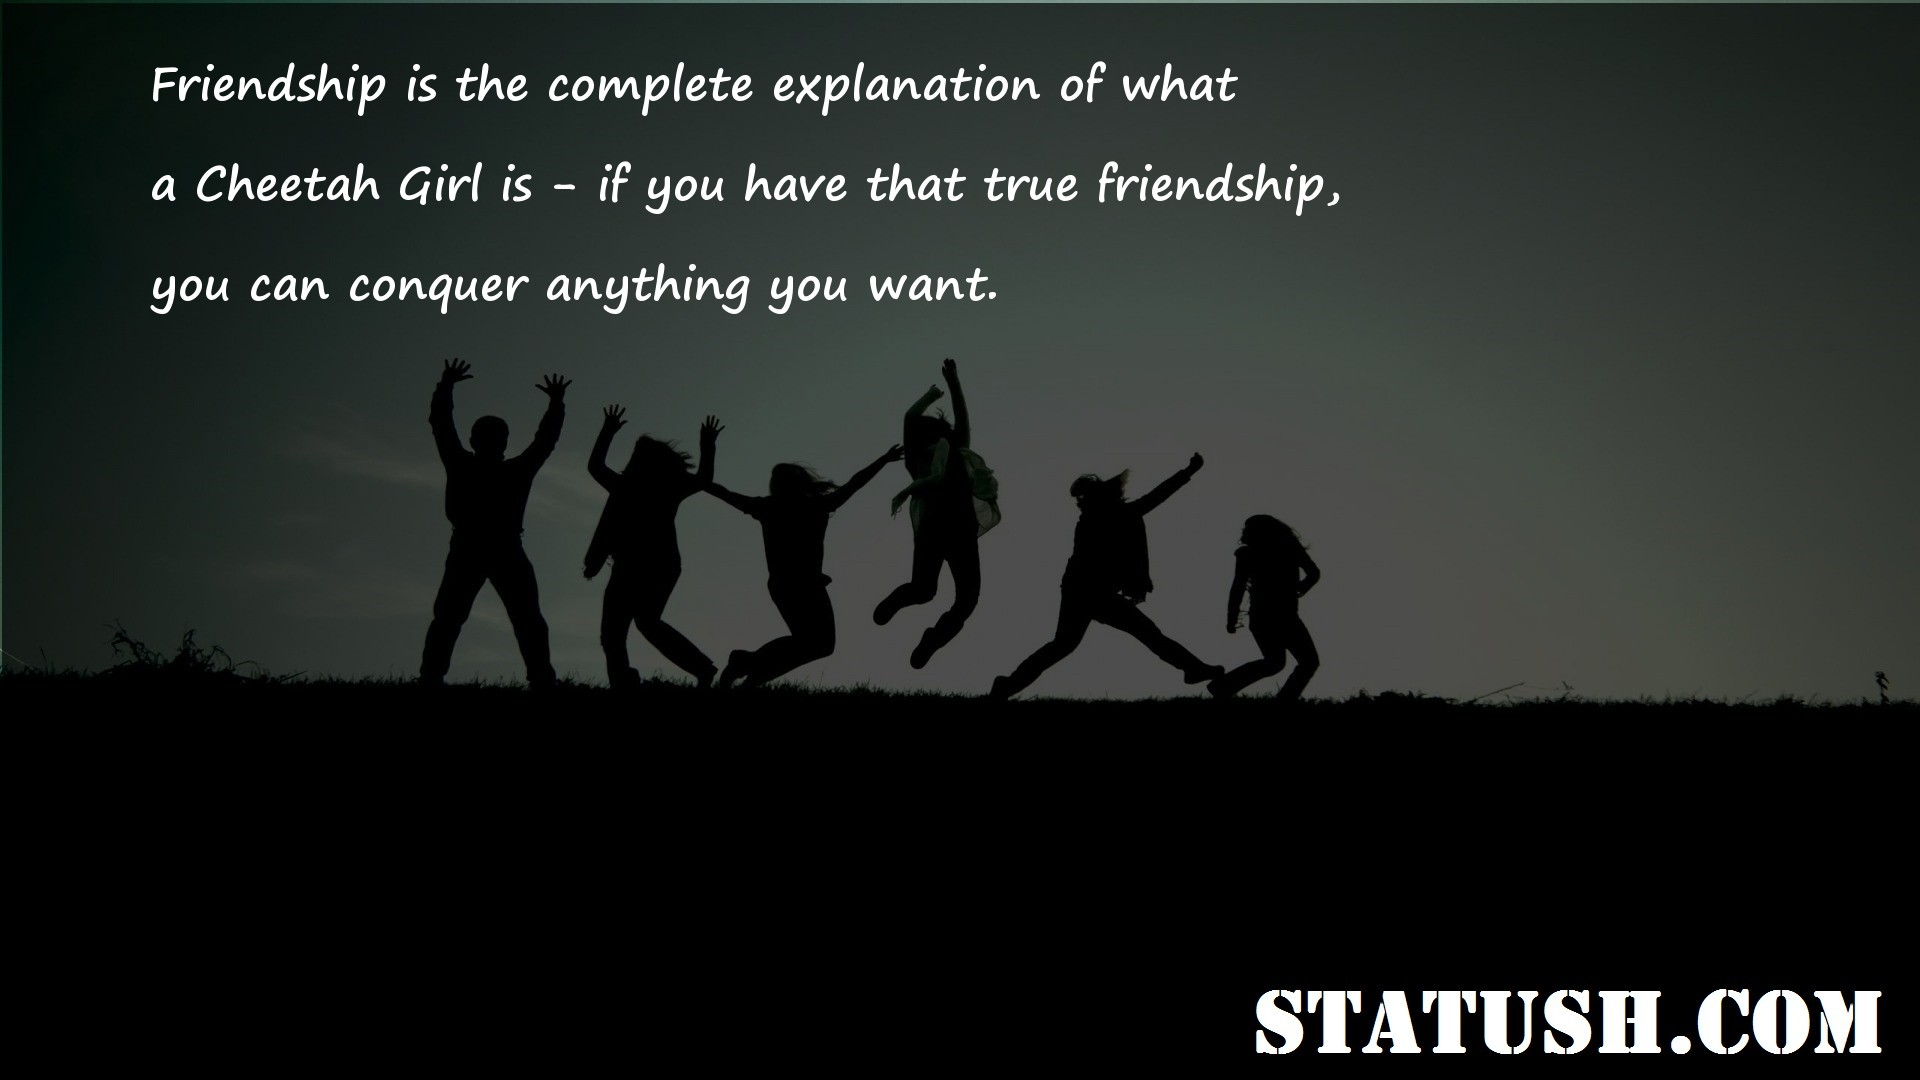 Friendship is the complete explanation of what